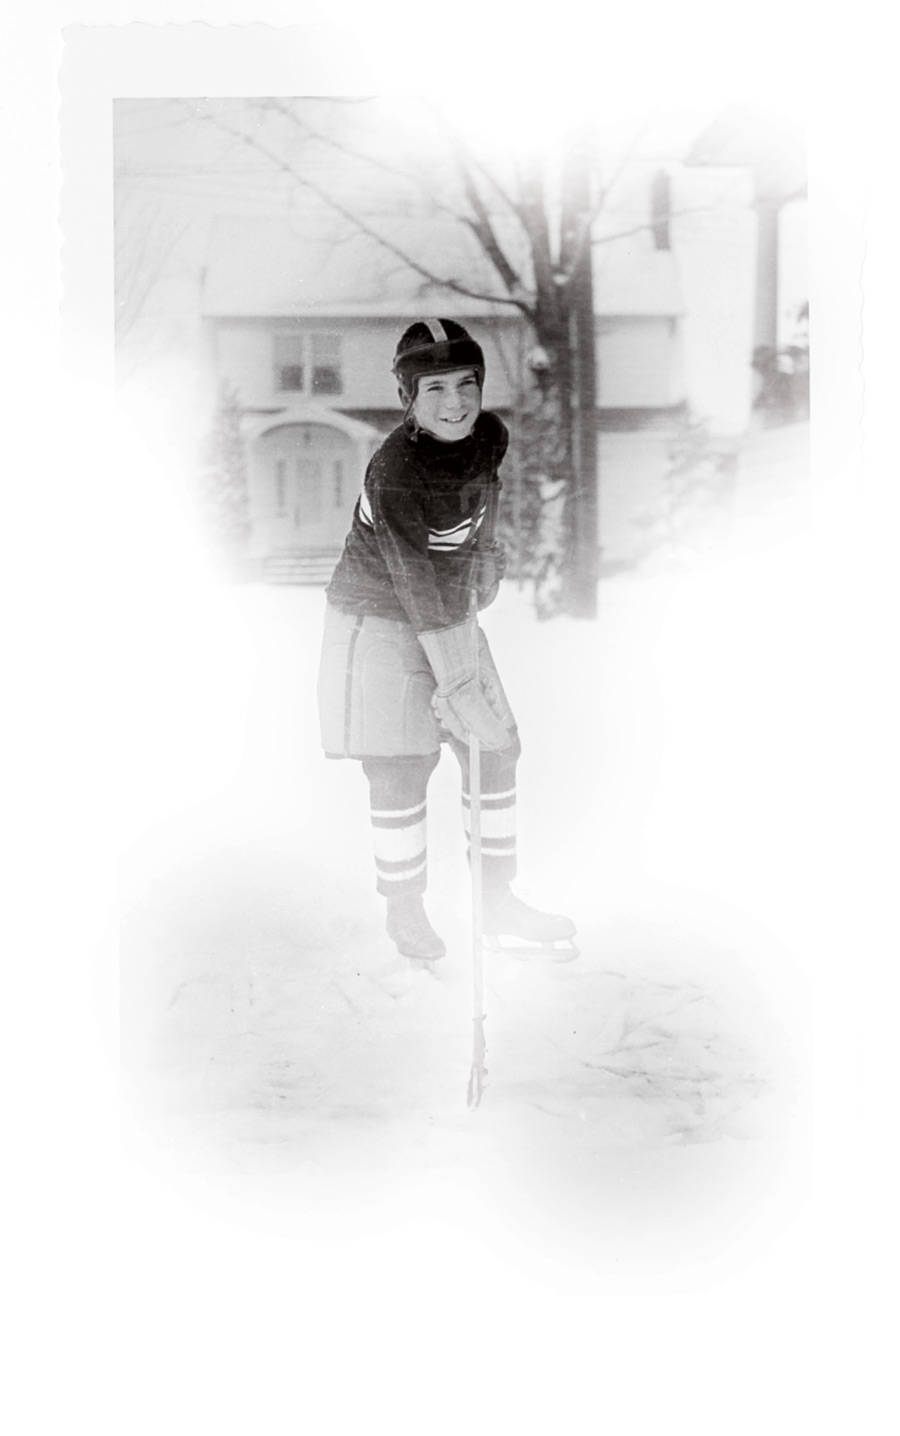 Childhood photo of Steve Riggs in hockey attire